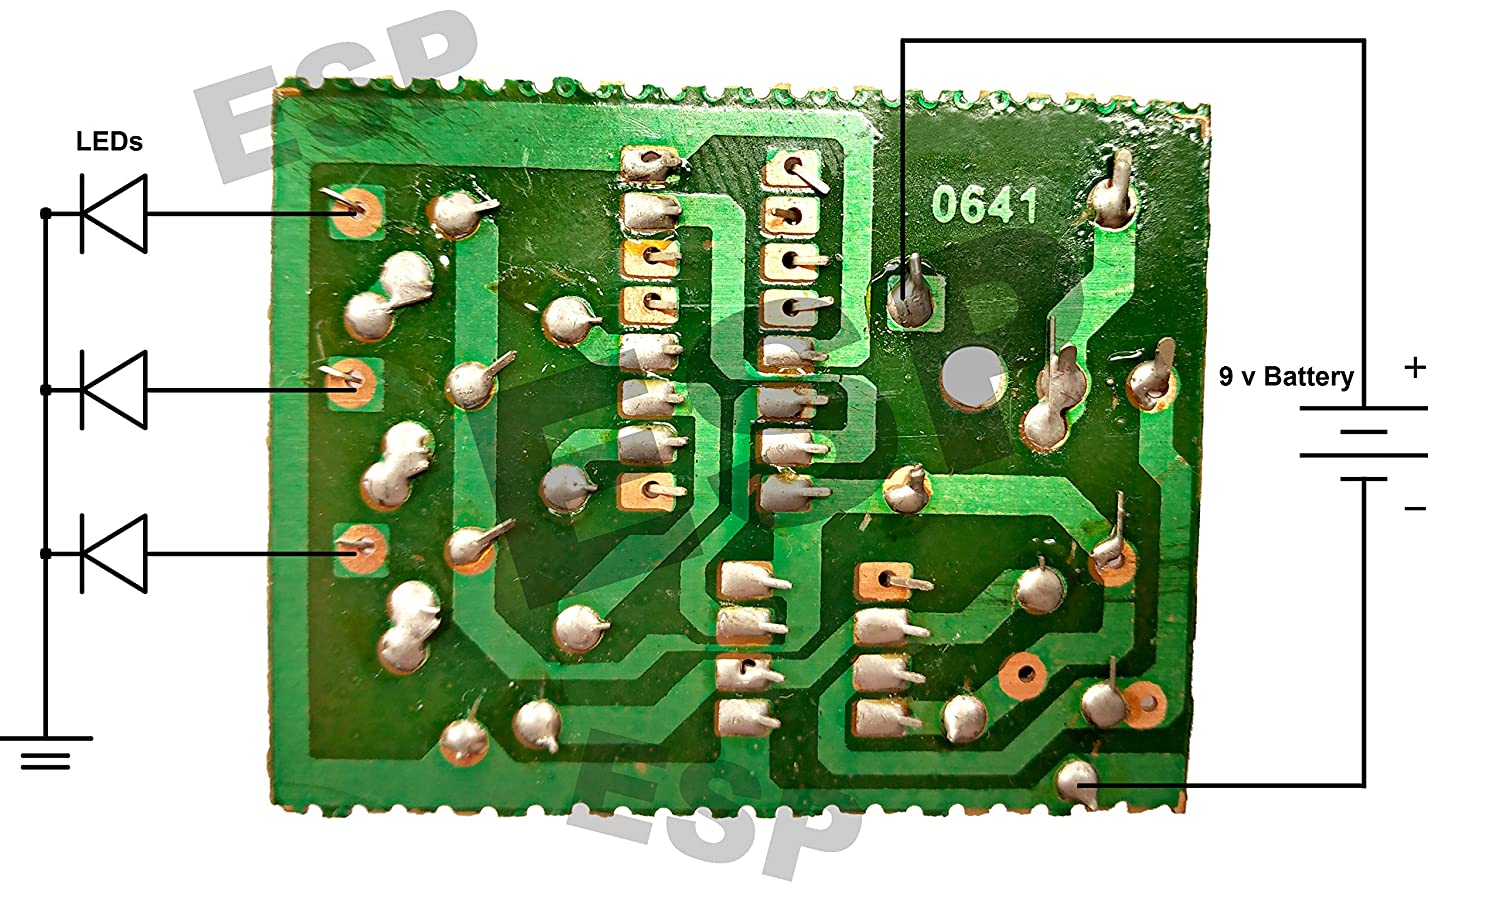 Led Chaser Circuit 3 Outputs Running Light Decad This Schematic Uses The 555 Timer And 4017 Ic To Drive Counter For Electronic Projects Cd4017 Industrial